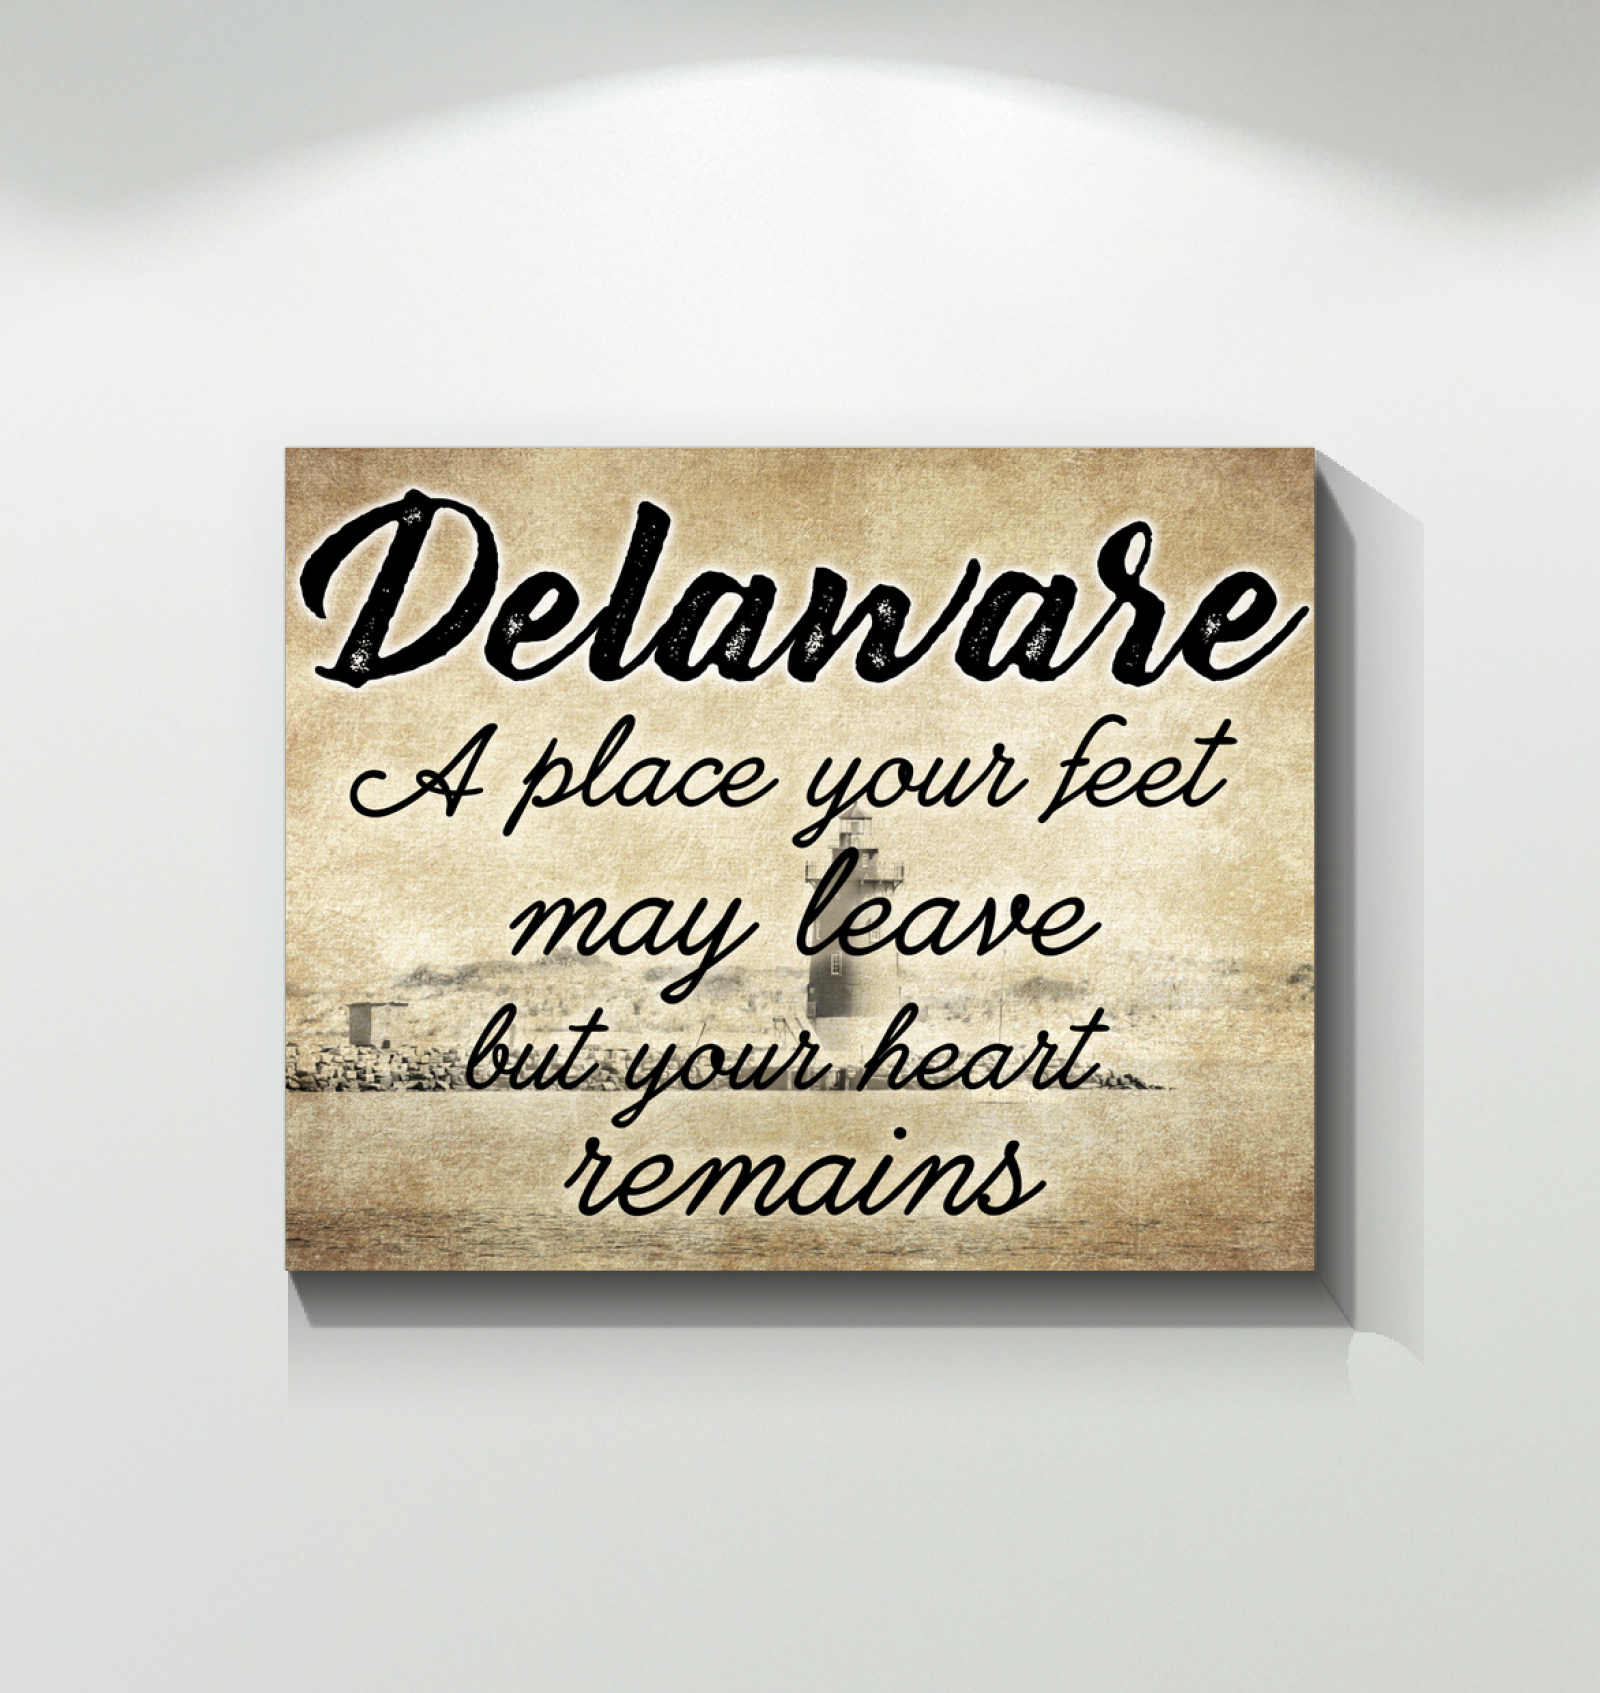 DELAWARE A PLACE YOUR FEET MAY LEAVE BUT YOUR HEART REMAINS